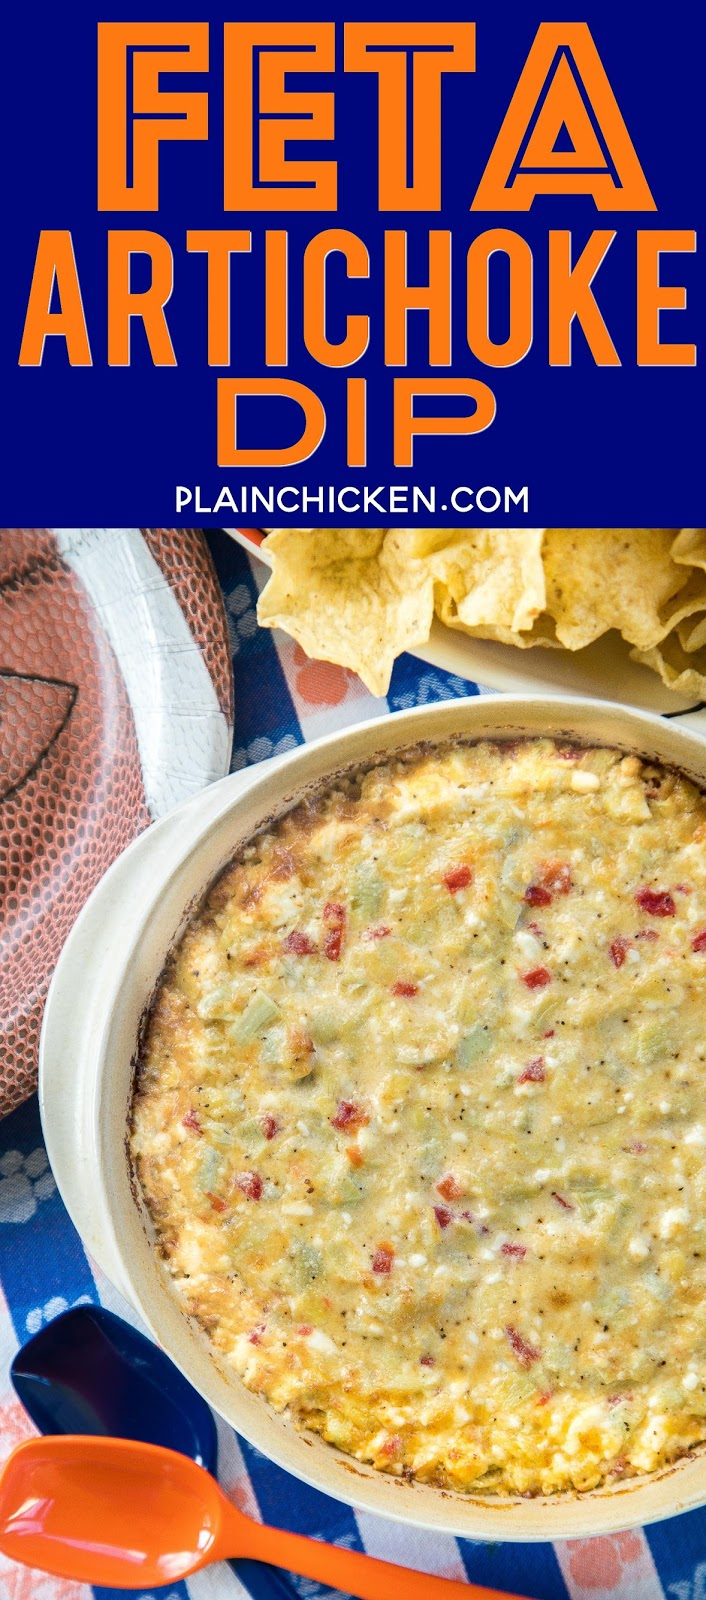 Feta Artichoke Dip - seriously delicious!!! SO simple and this tastes amazing! Only 6 ingredients - feta, artichokes, pimentos, garlic, parmesan and mayonnaise. Can mae ahead of time and refrigerate until ready to bake. Ready to eat in under 30 minutes. Always the first thing to go at parties!! #appetizer #superbowl #tailgating